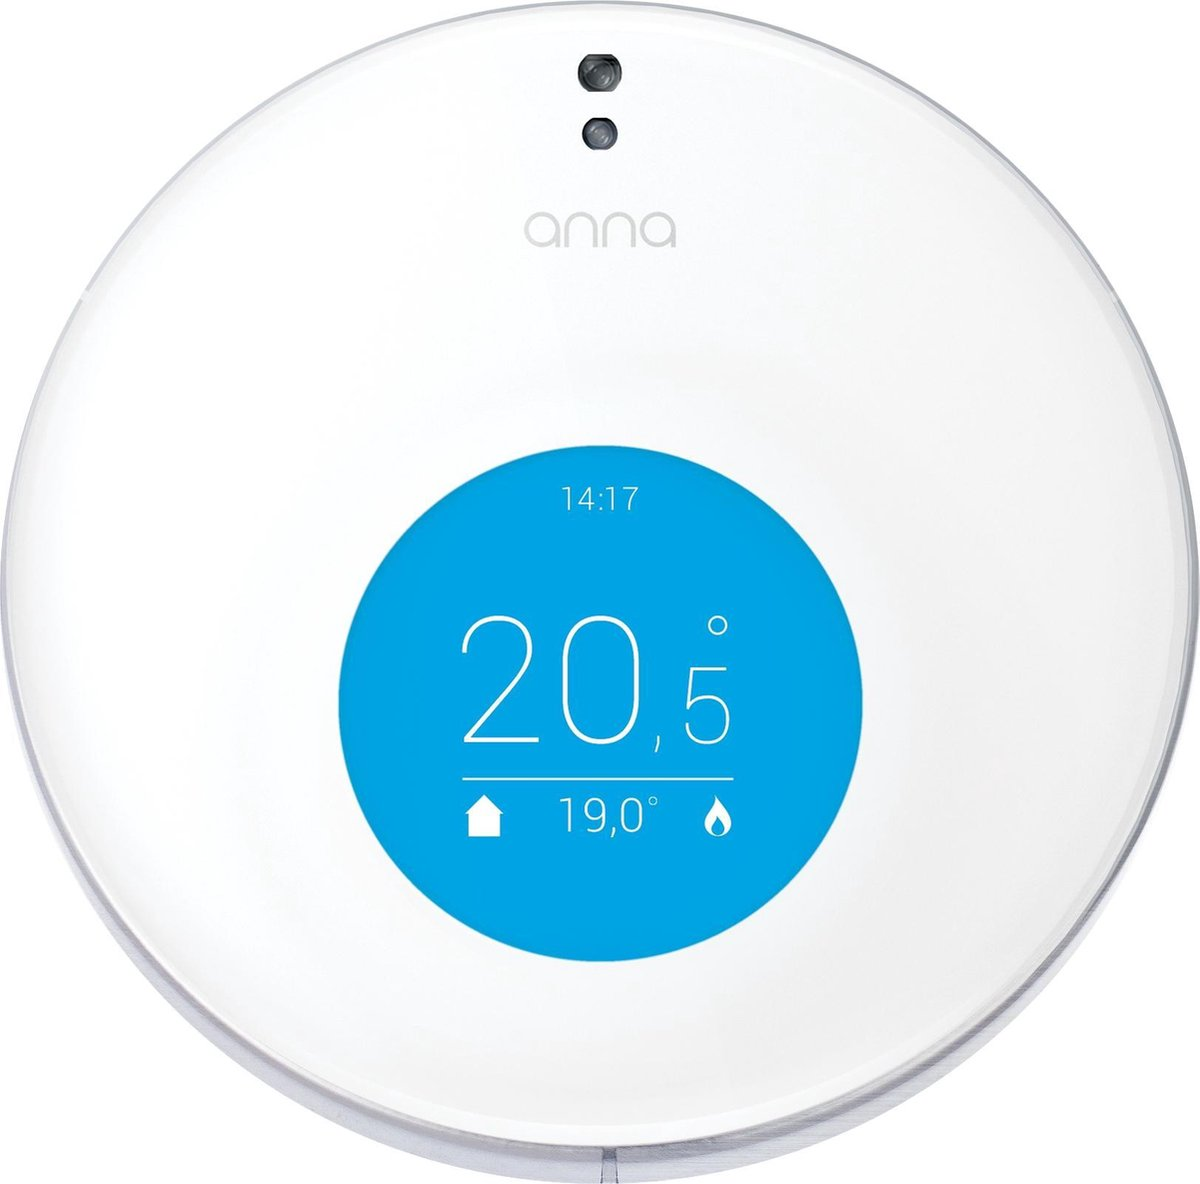 ANNA - slimme thermostaat - opentherm 24V